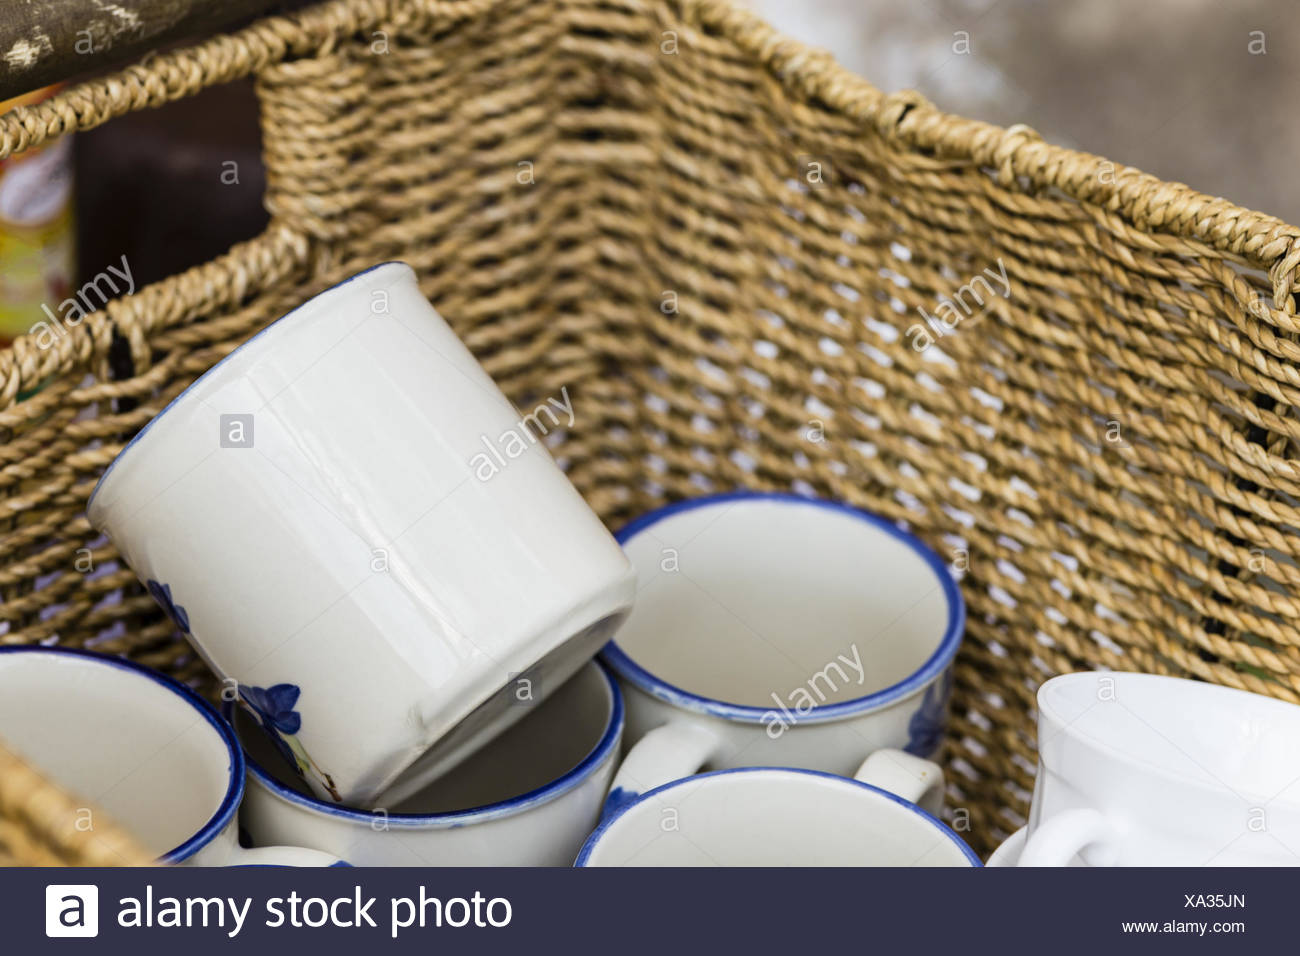 coffee mugs in a basket - Stock Image